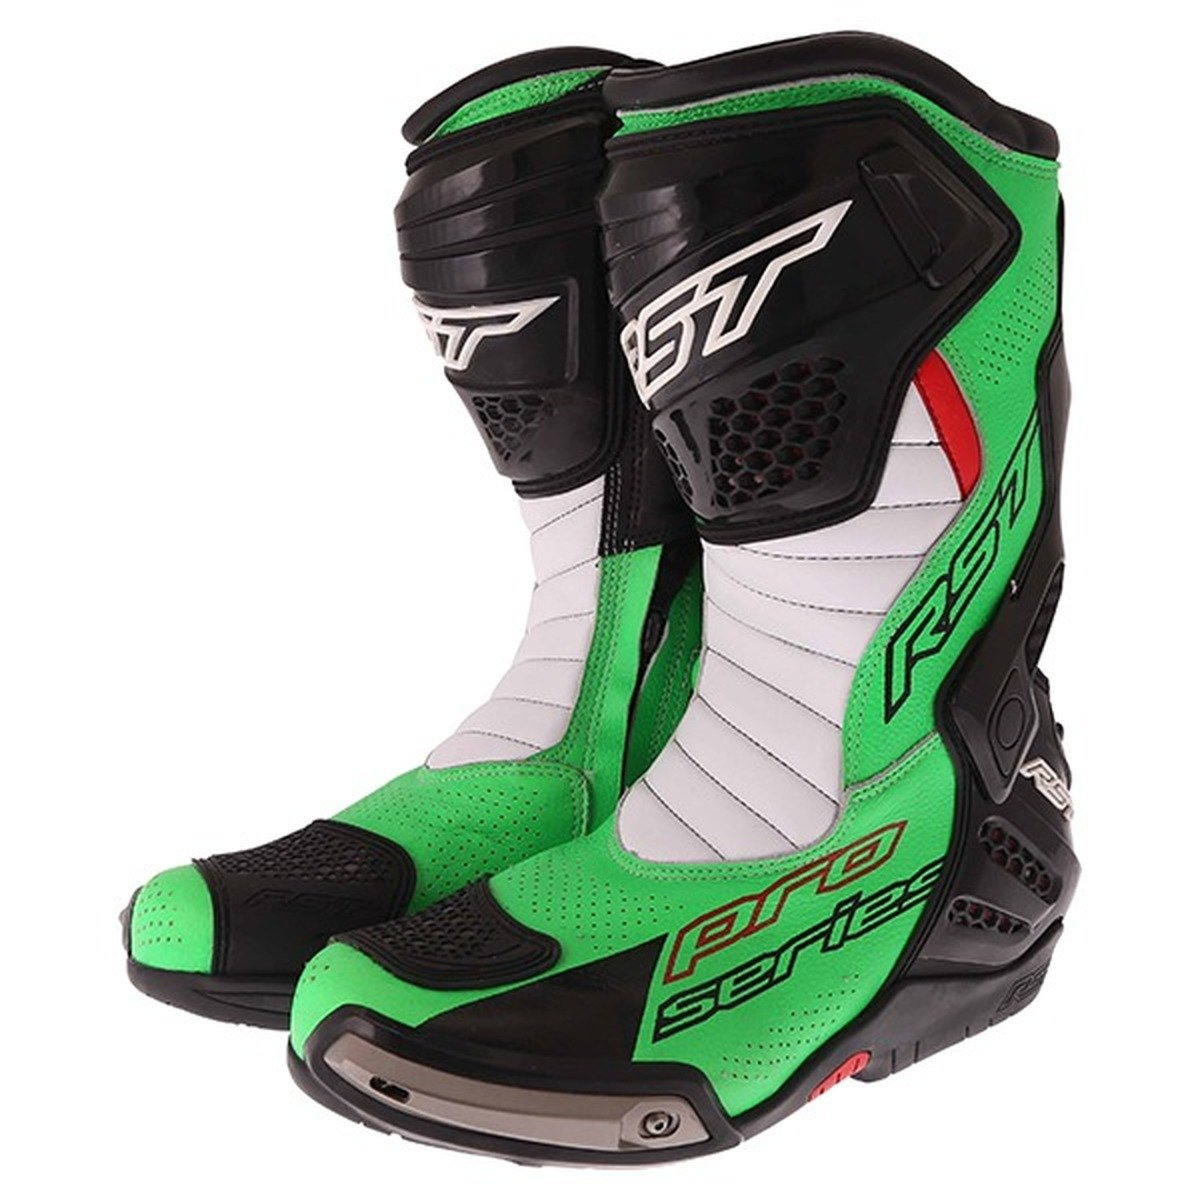 RST Pro Series 1503 Race CE Boots in Neon Green